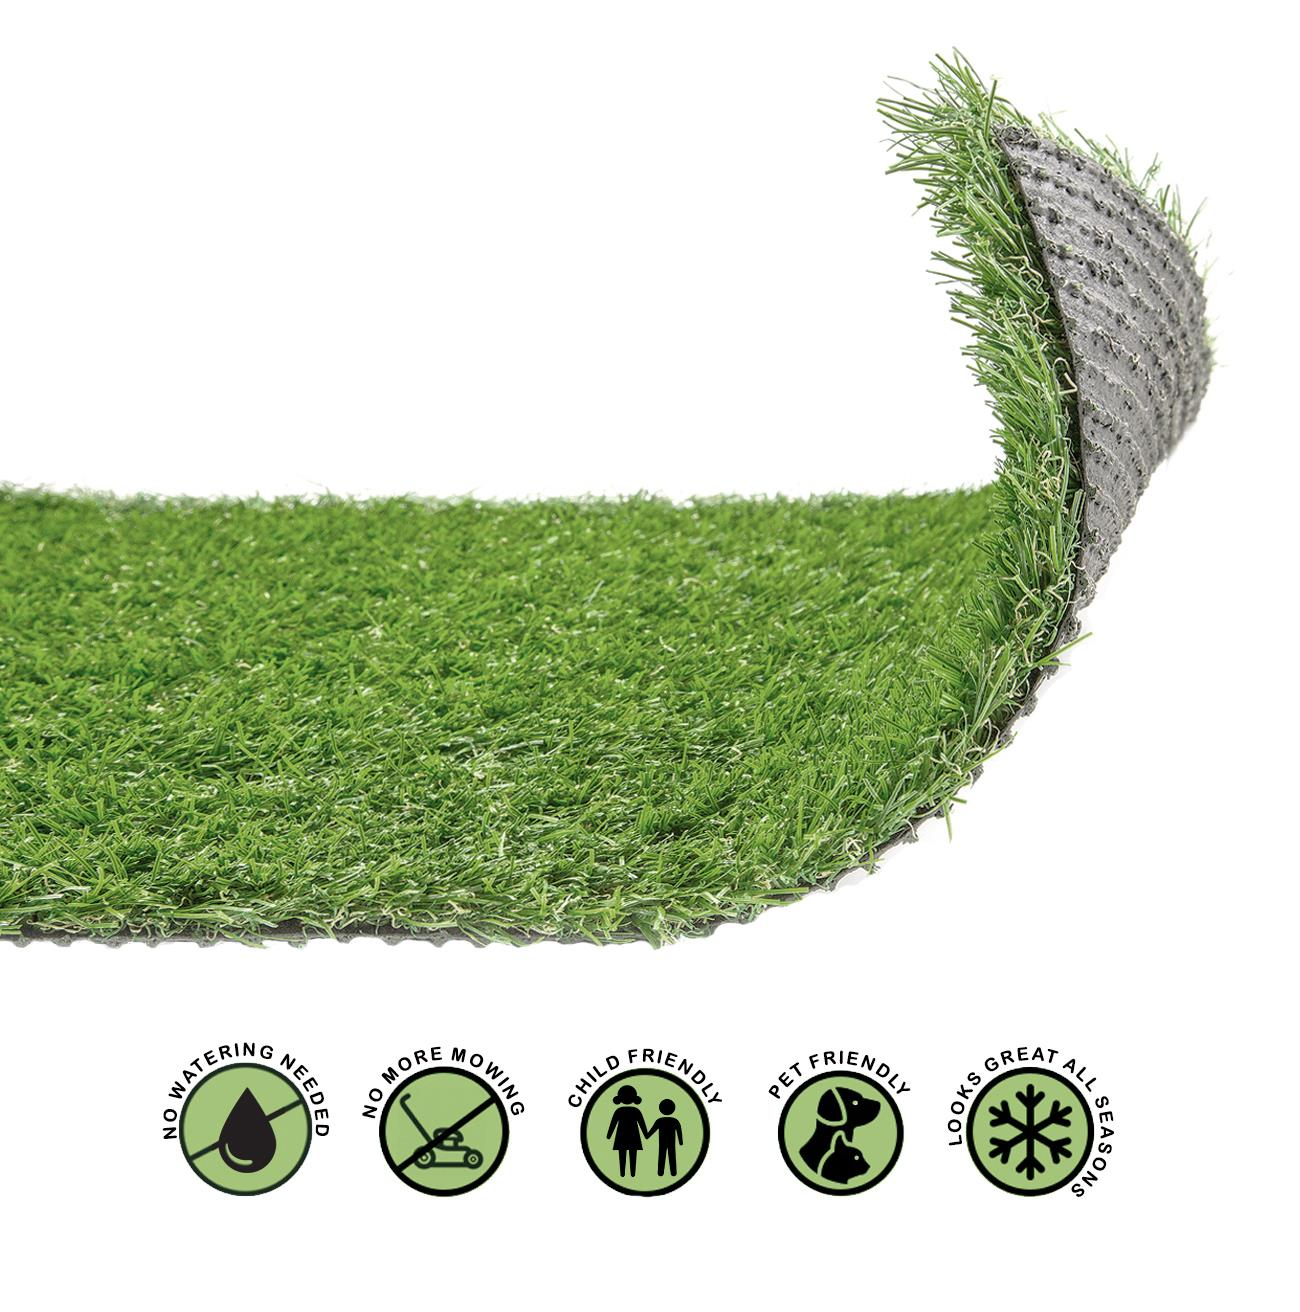 Astro Turf Garden >> Details About 20mm Artificial Grass Realistic Quality Garden Green Lawn Fake Astro Turf 4mx1m